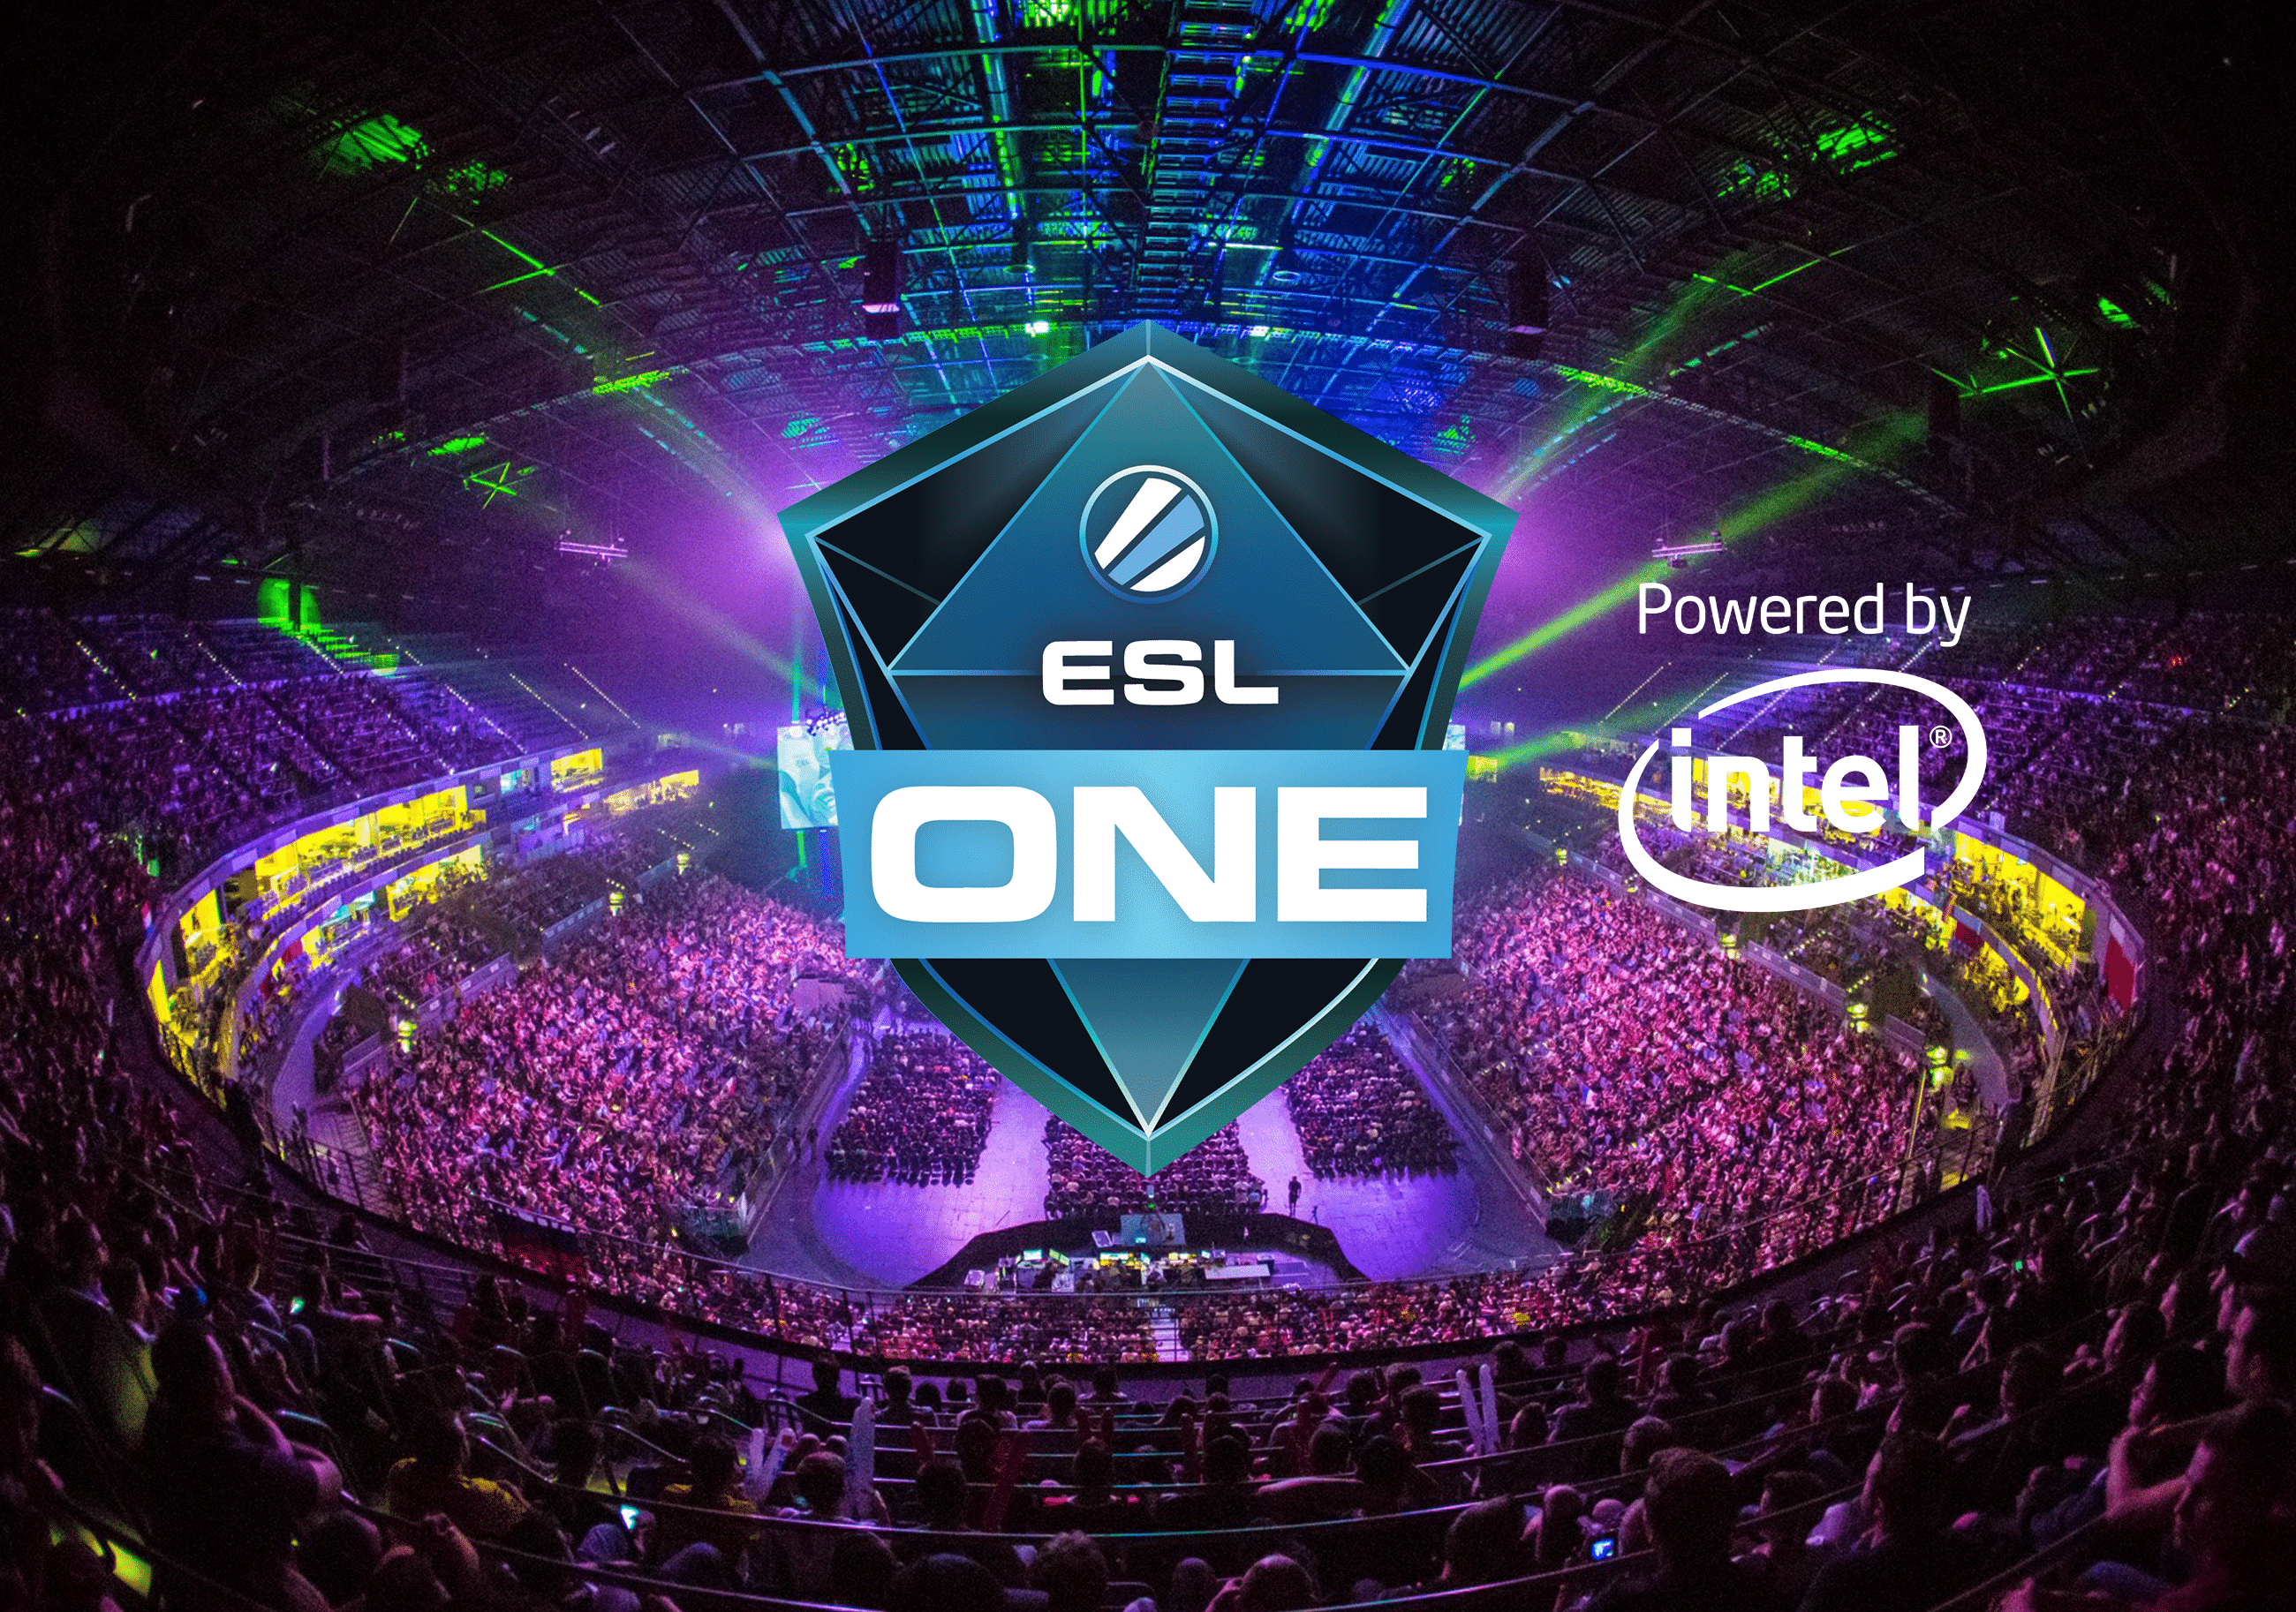 ESL One Cologne 2018 (CS: GO) Tournament Poster with logo in foreground and esports arena at the back